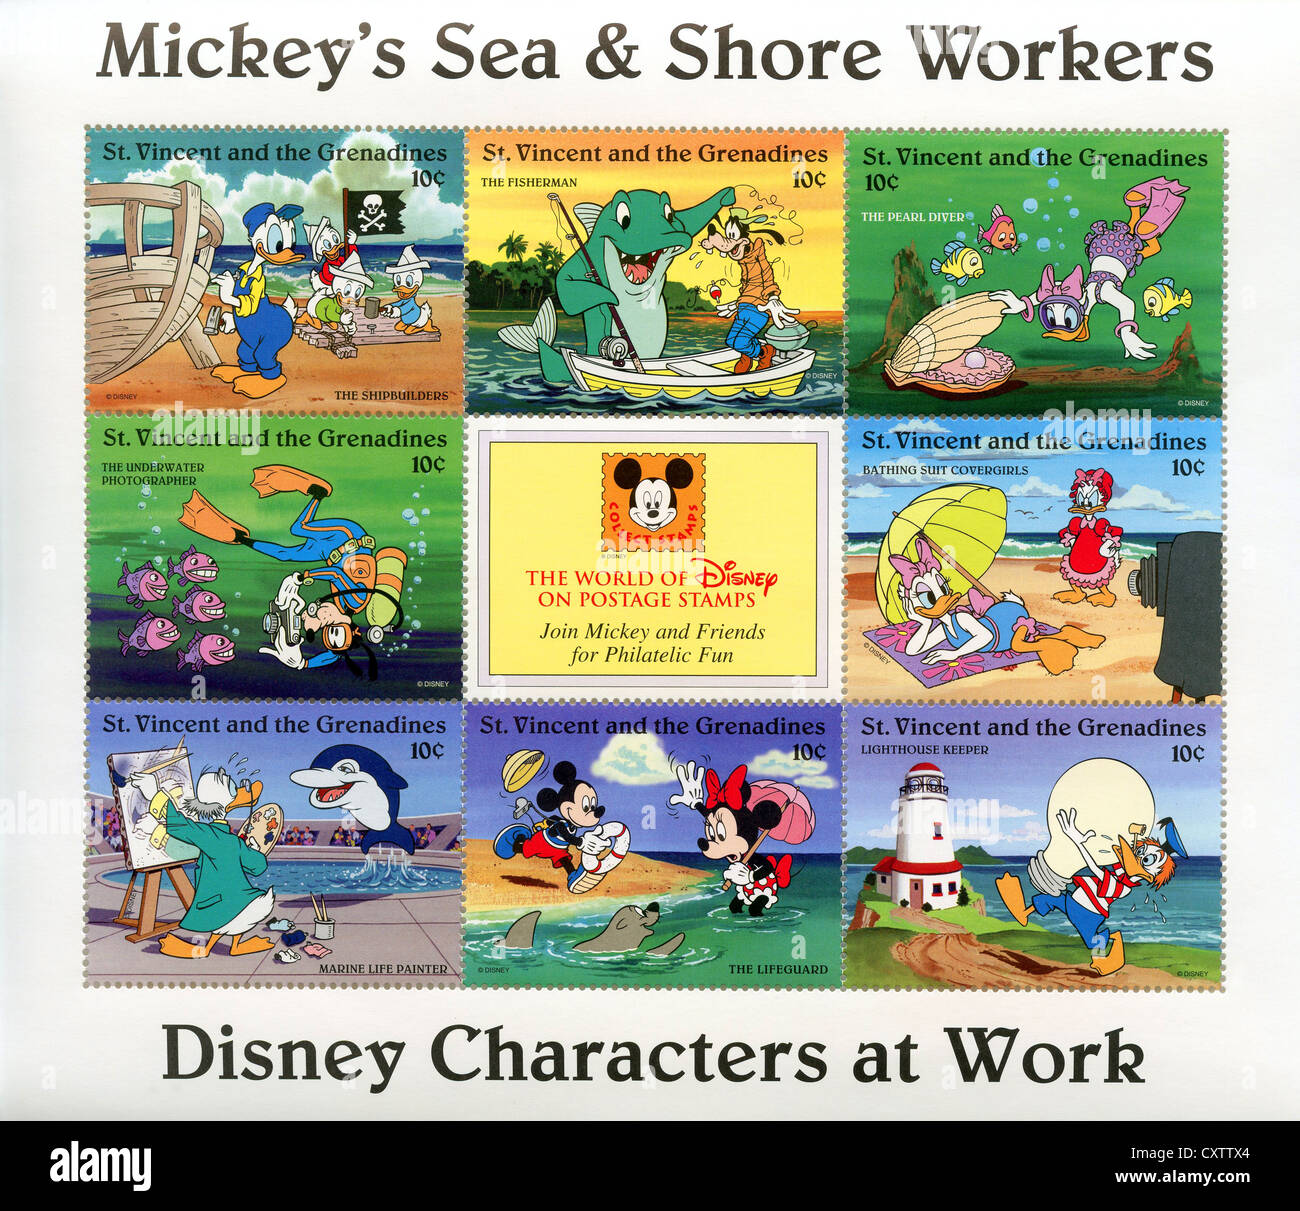 100 Pictures Cartoon Characters saint vincent and the grenadines postage stamps - disney